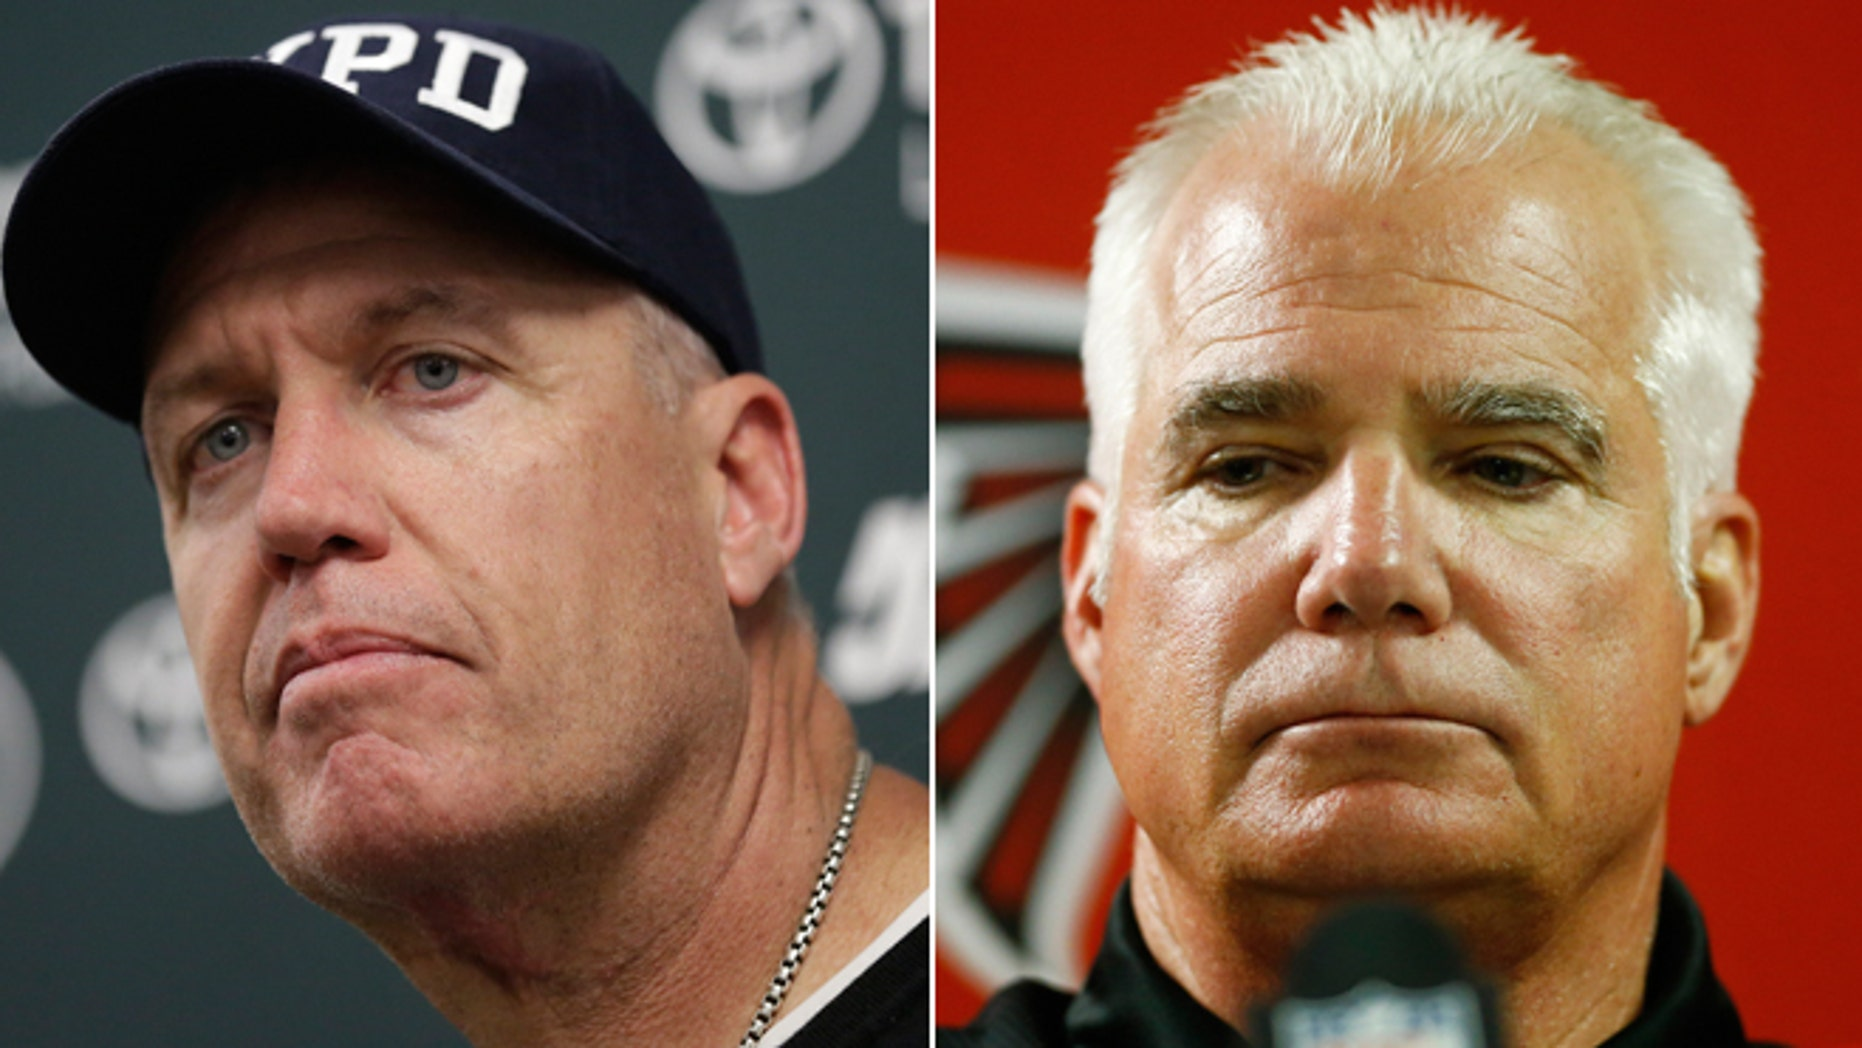 The New York Jets' Rex Ryan and the Atlanta Falcons' Mike Smith.